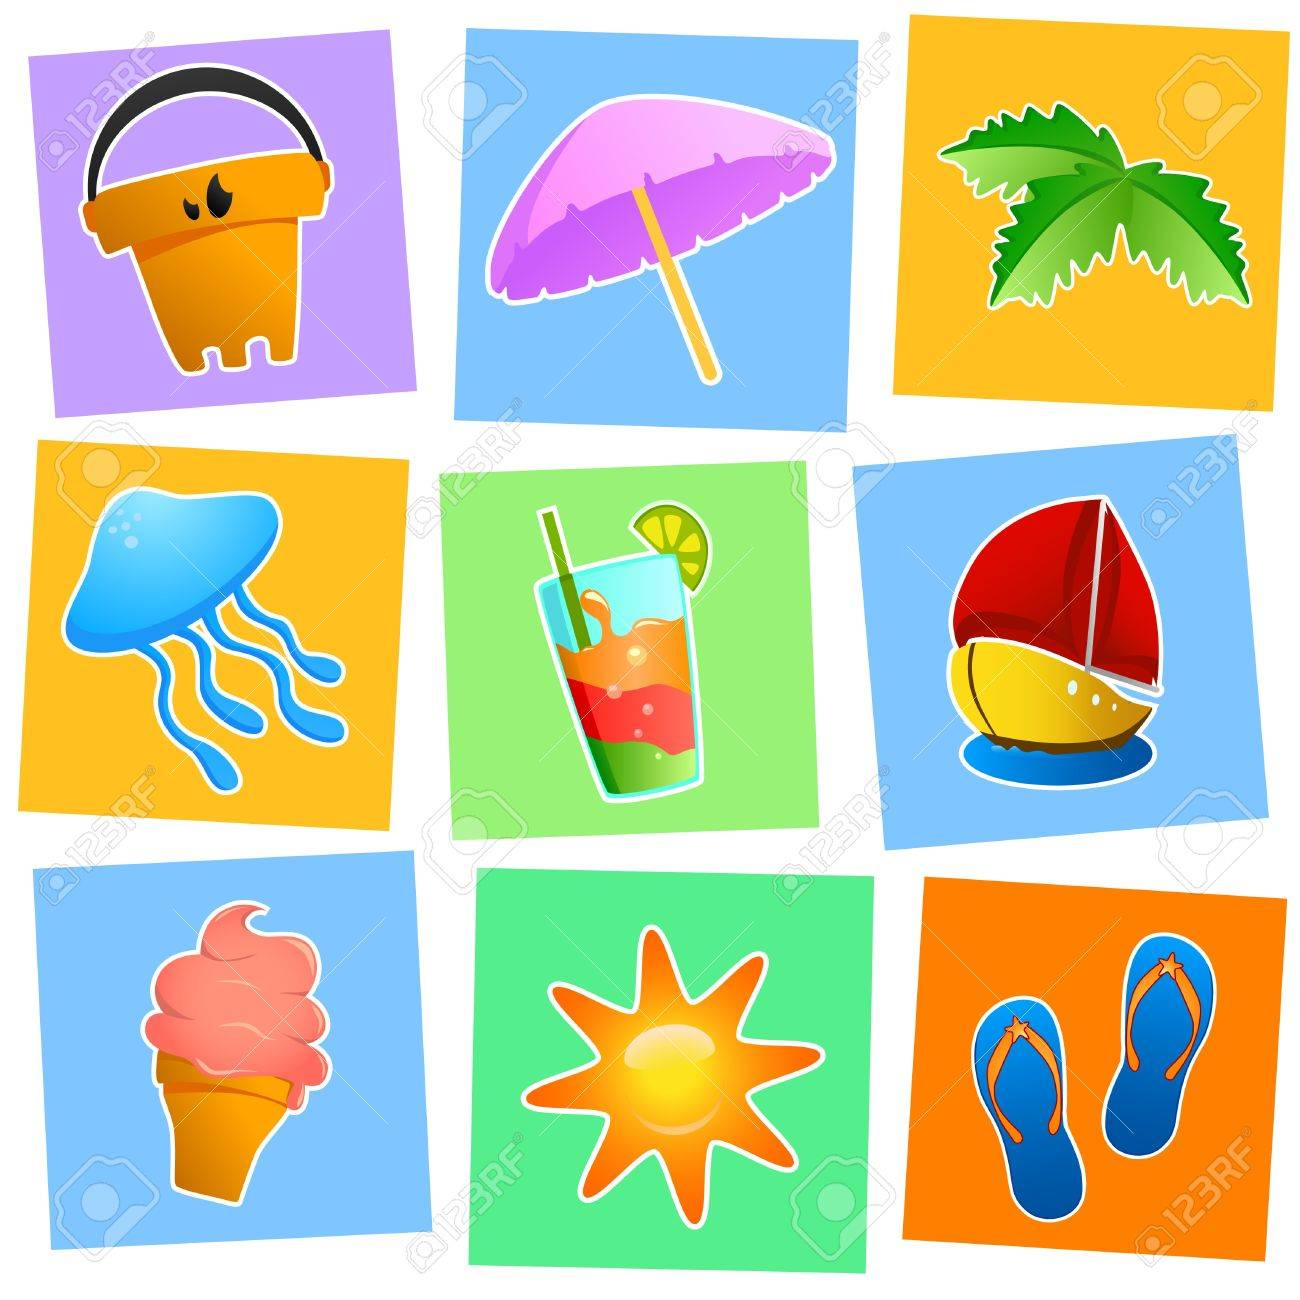 Summer Graphics Vector Royalty Free Cliparts, Vectors, And Stock ...